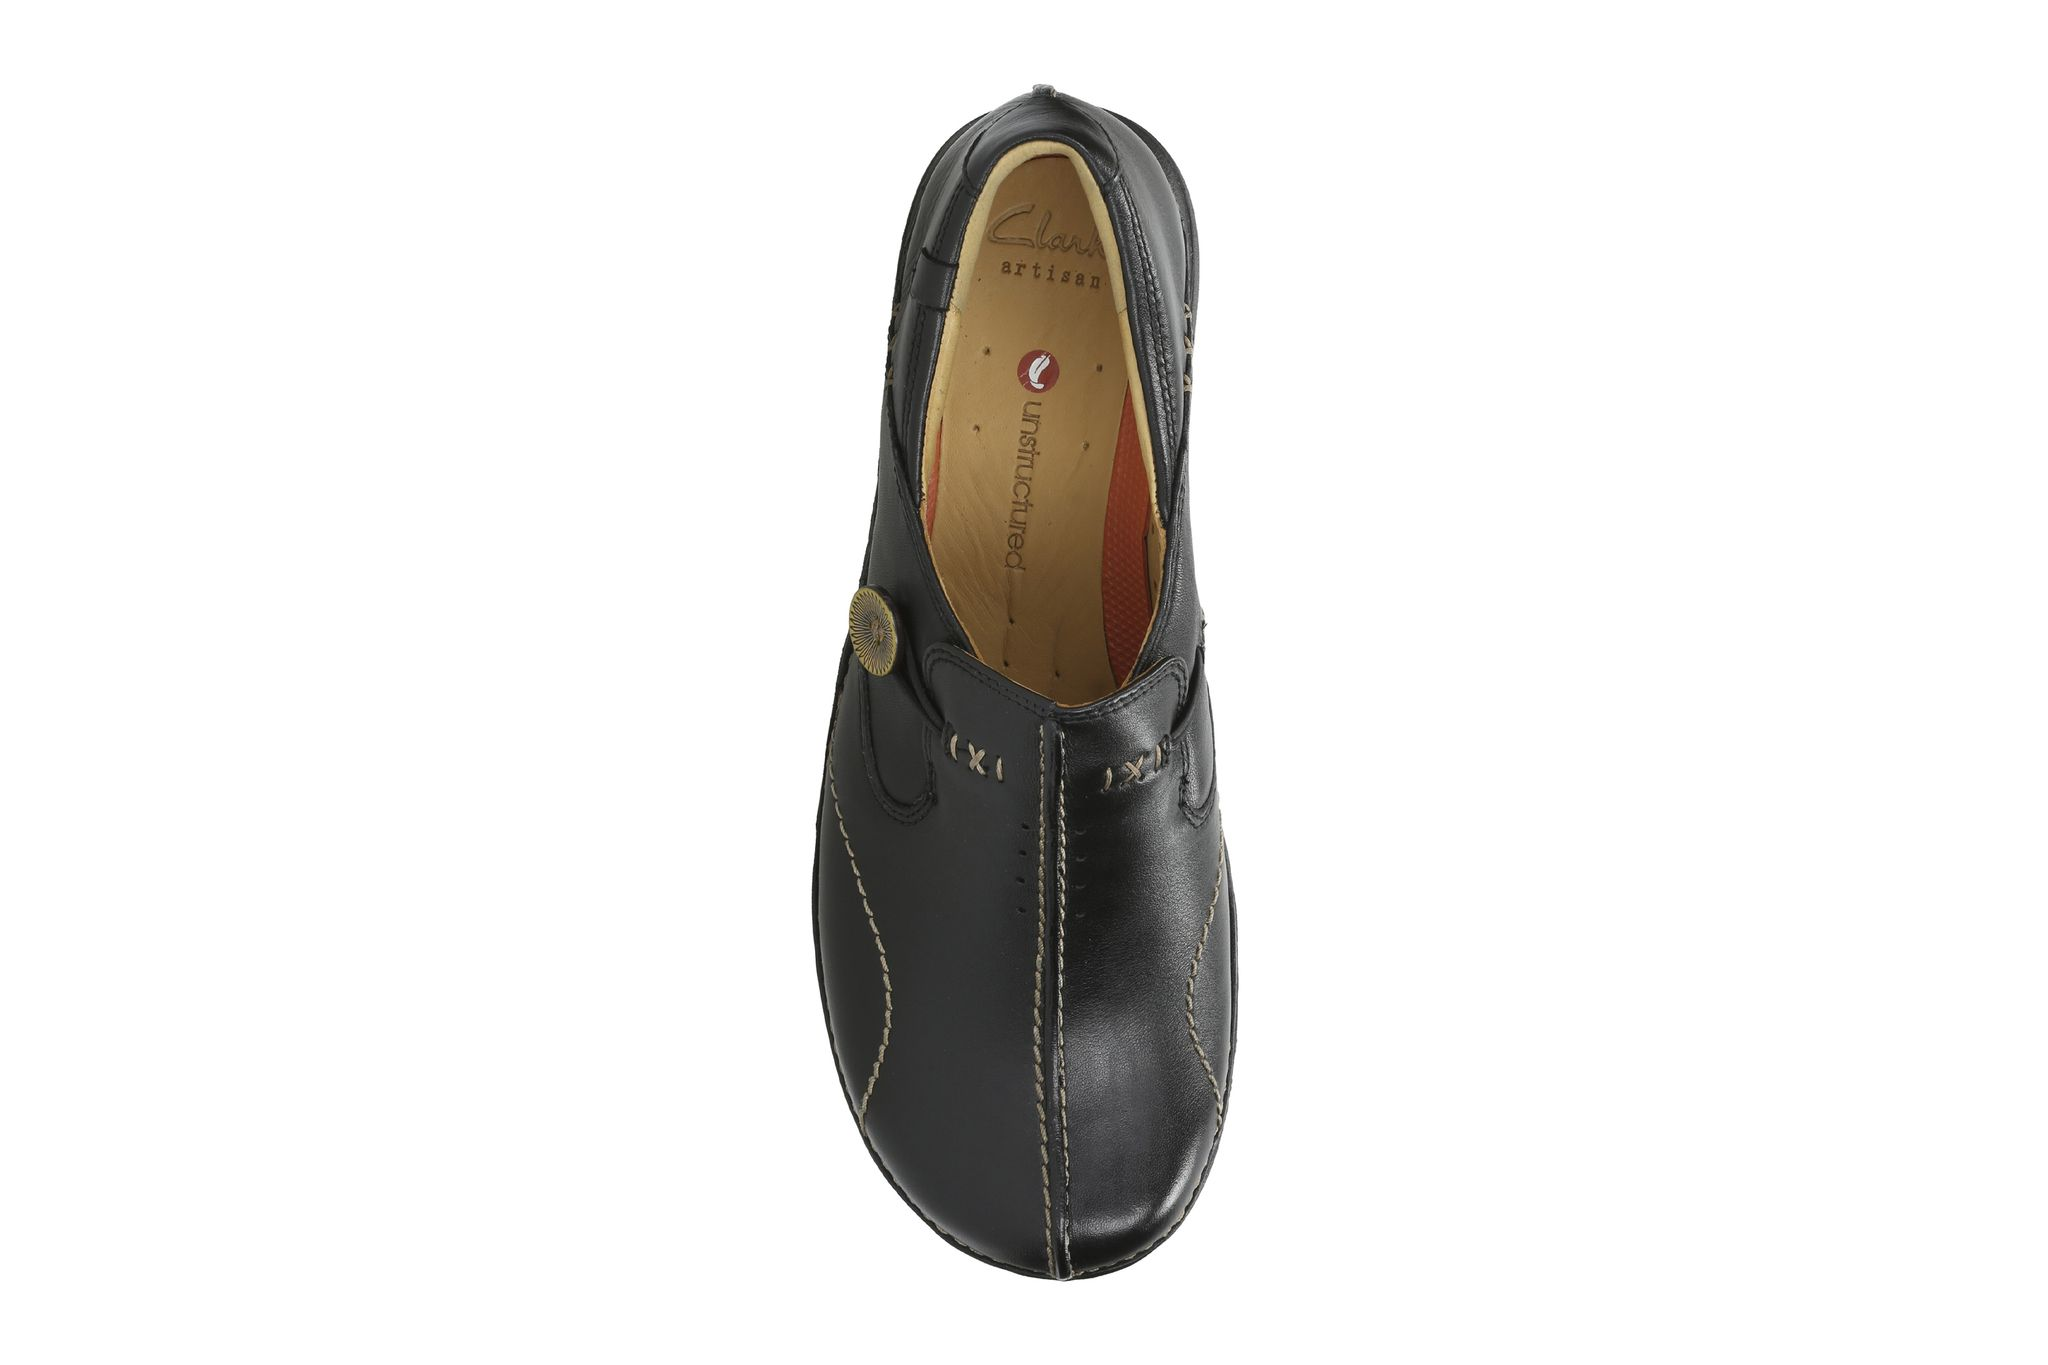 9a12e8aa5 Clarks Womens Un Loop Black Leather Shoes